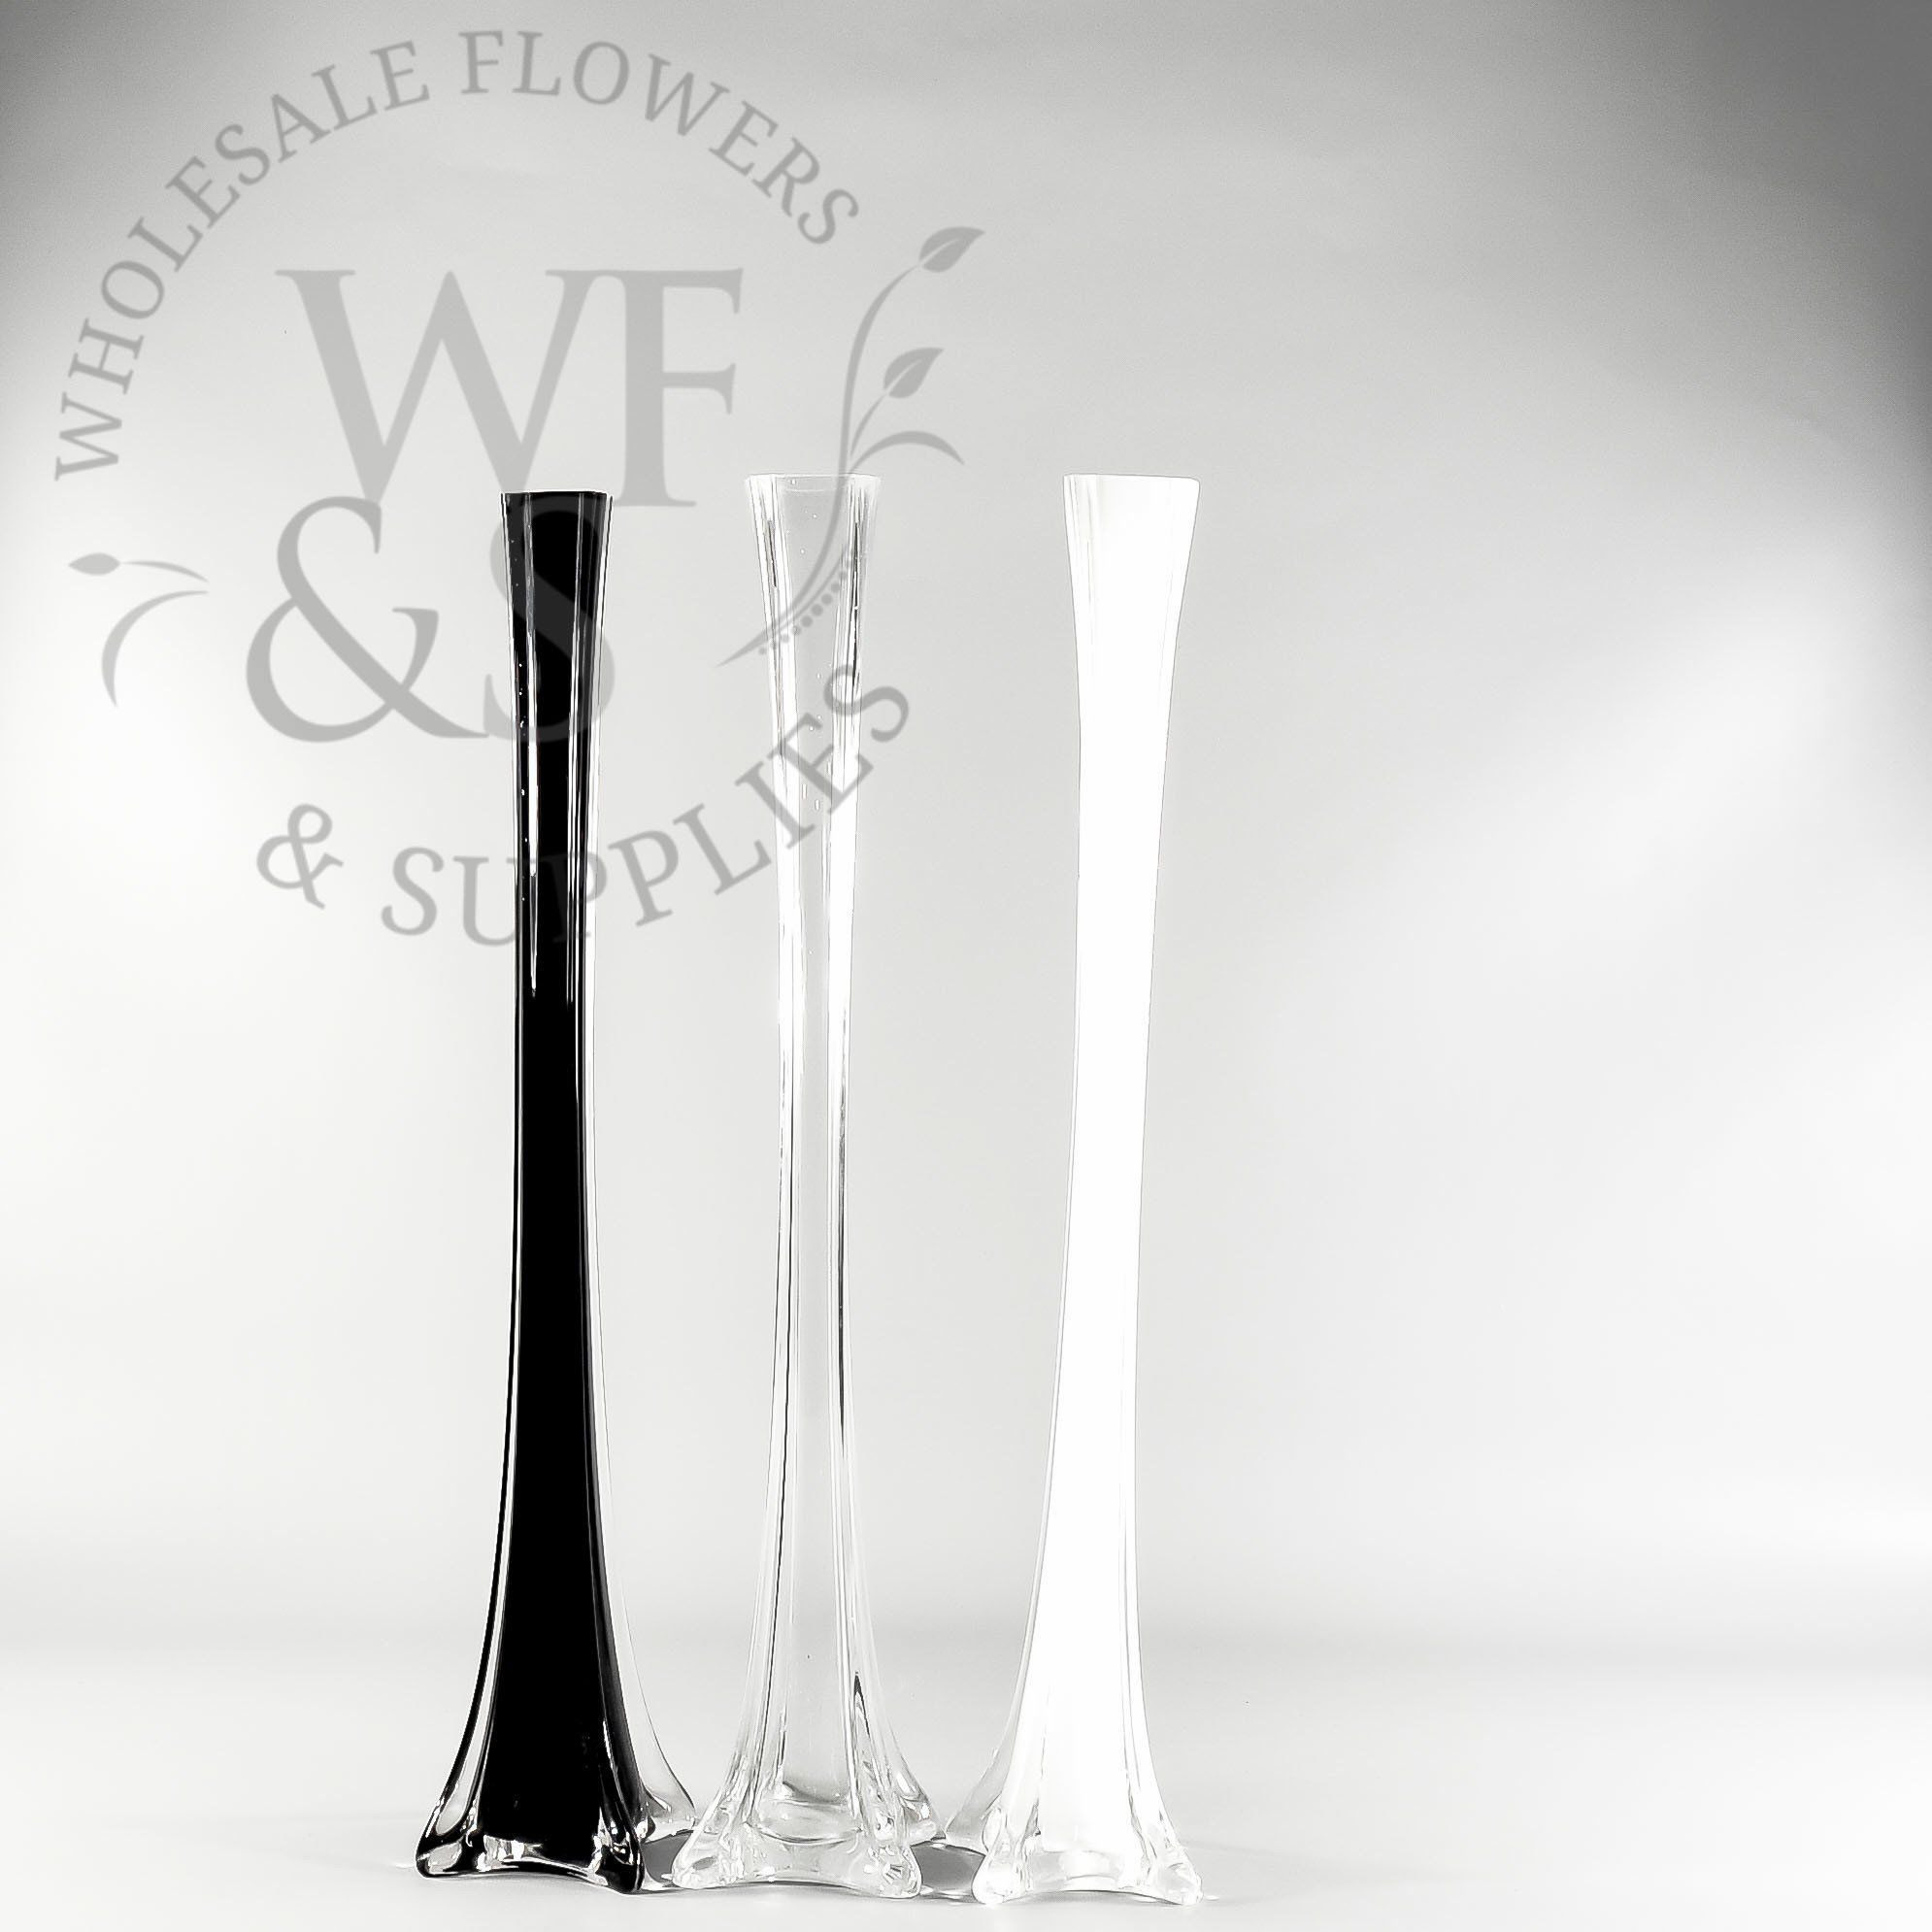 20 cylinder vase of eiffel tower glass vase 20in flower bouquet ideas pinterest with regard to 20 glass eiffel tower vase our price 4 50 height 20 opening diameter